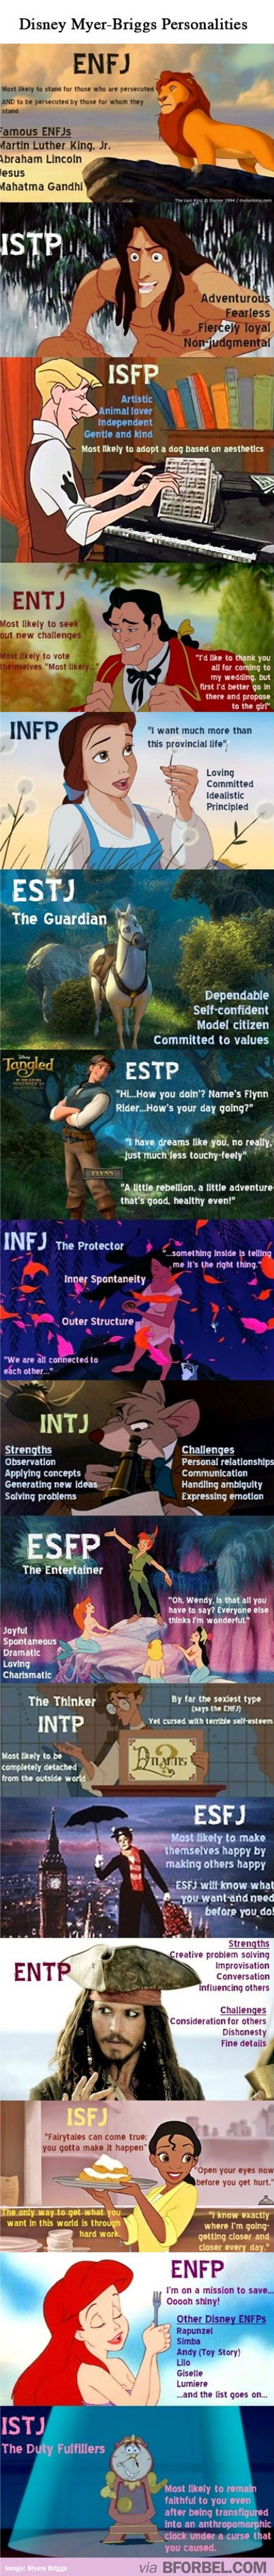 "Meyers Briggs of Disney! I'm ESFP an ""entertainer"". In this case Peter Pan lol."